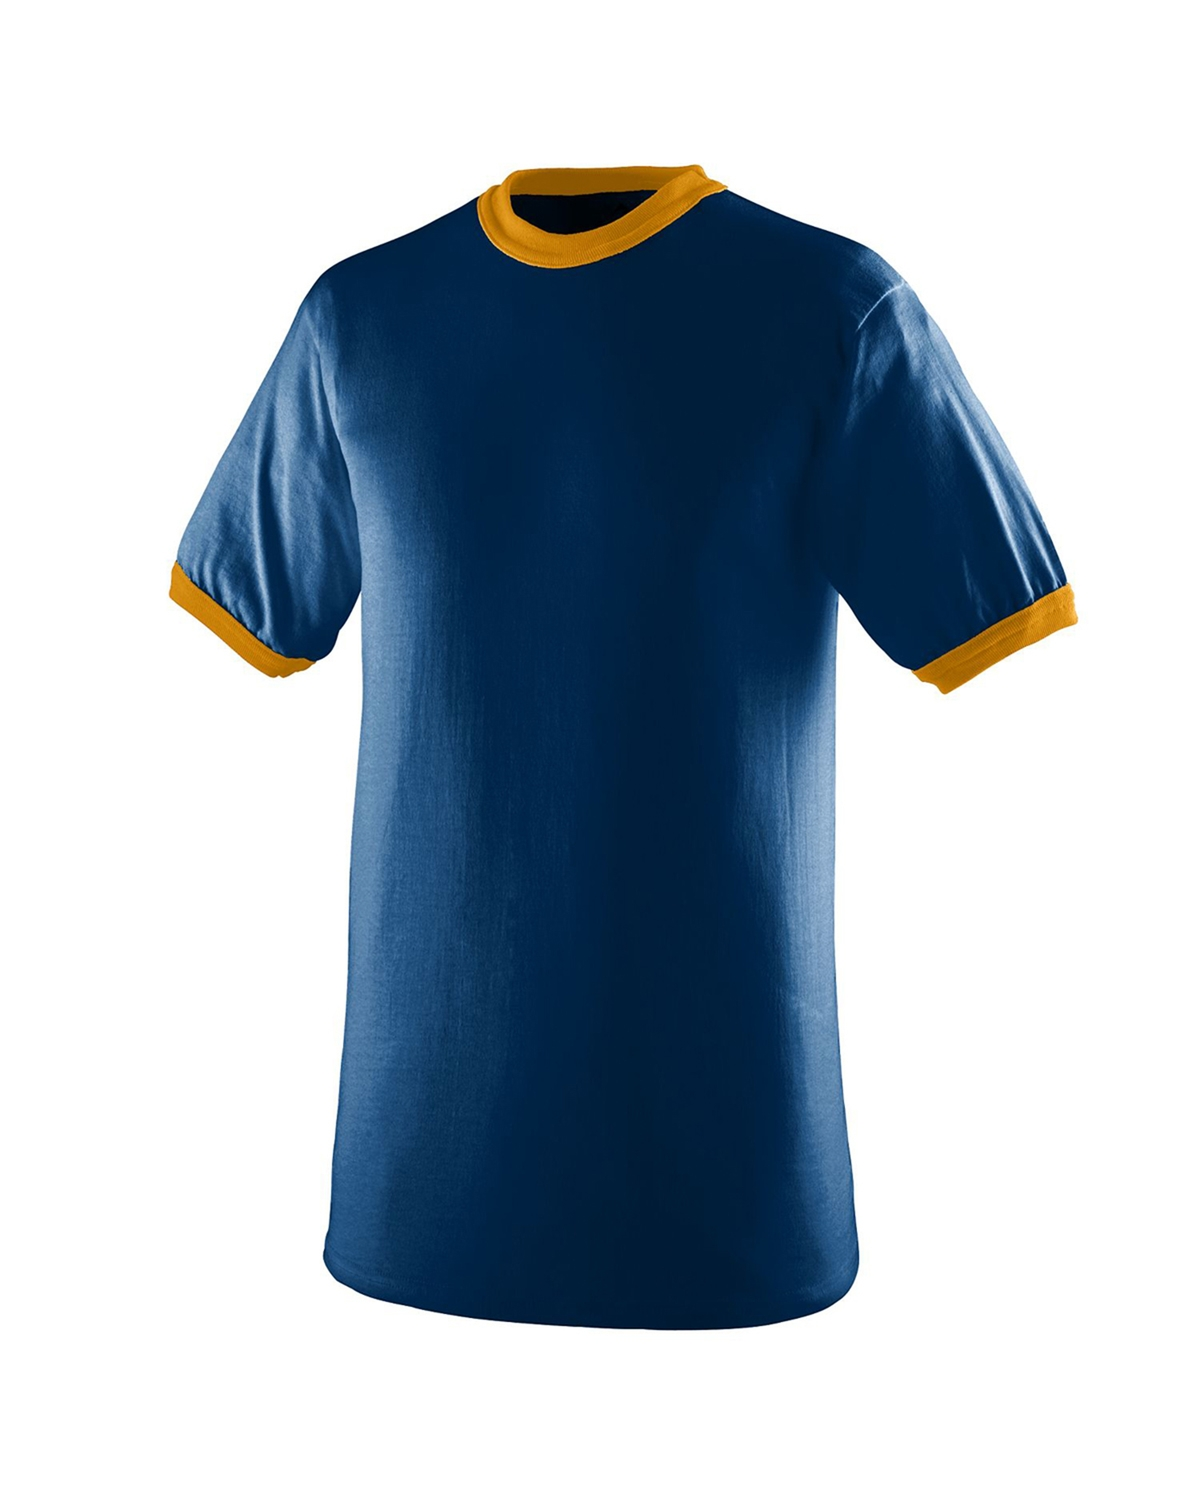 click to view Navy/Gold